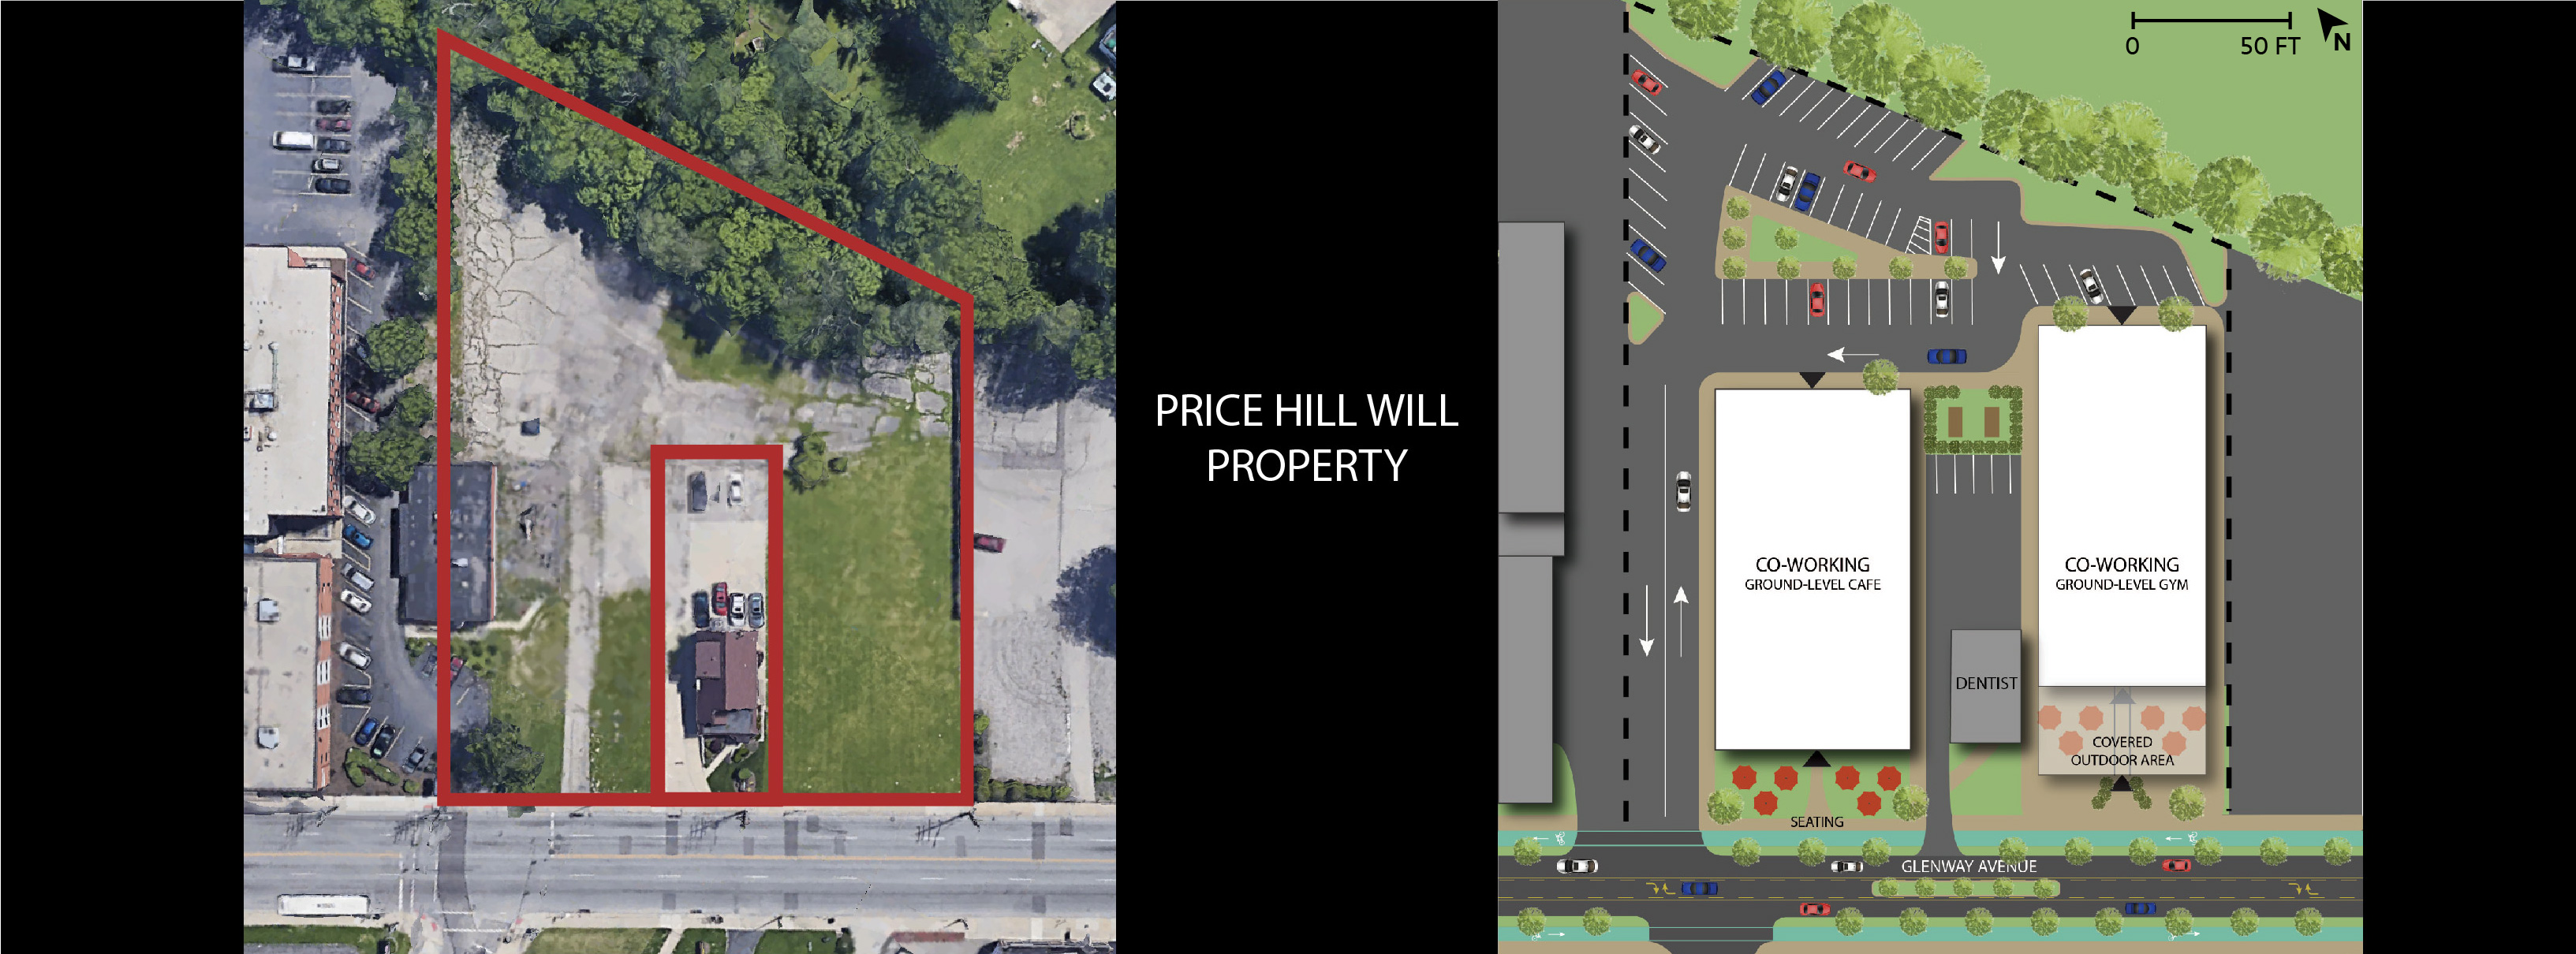 CO-WORKING PRICE HILL WILL PROPERTY SITE PLAN